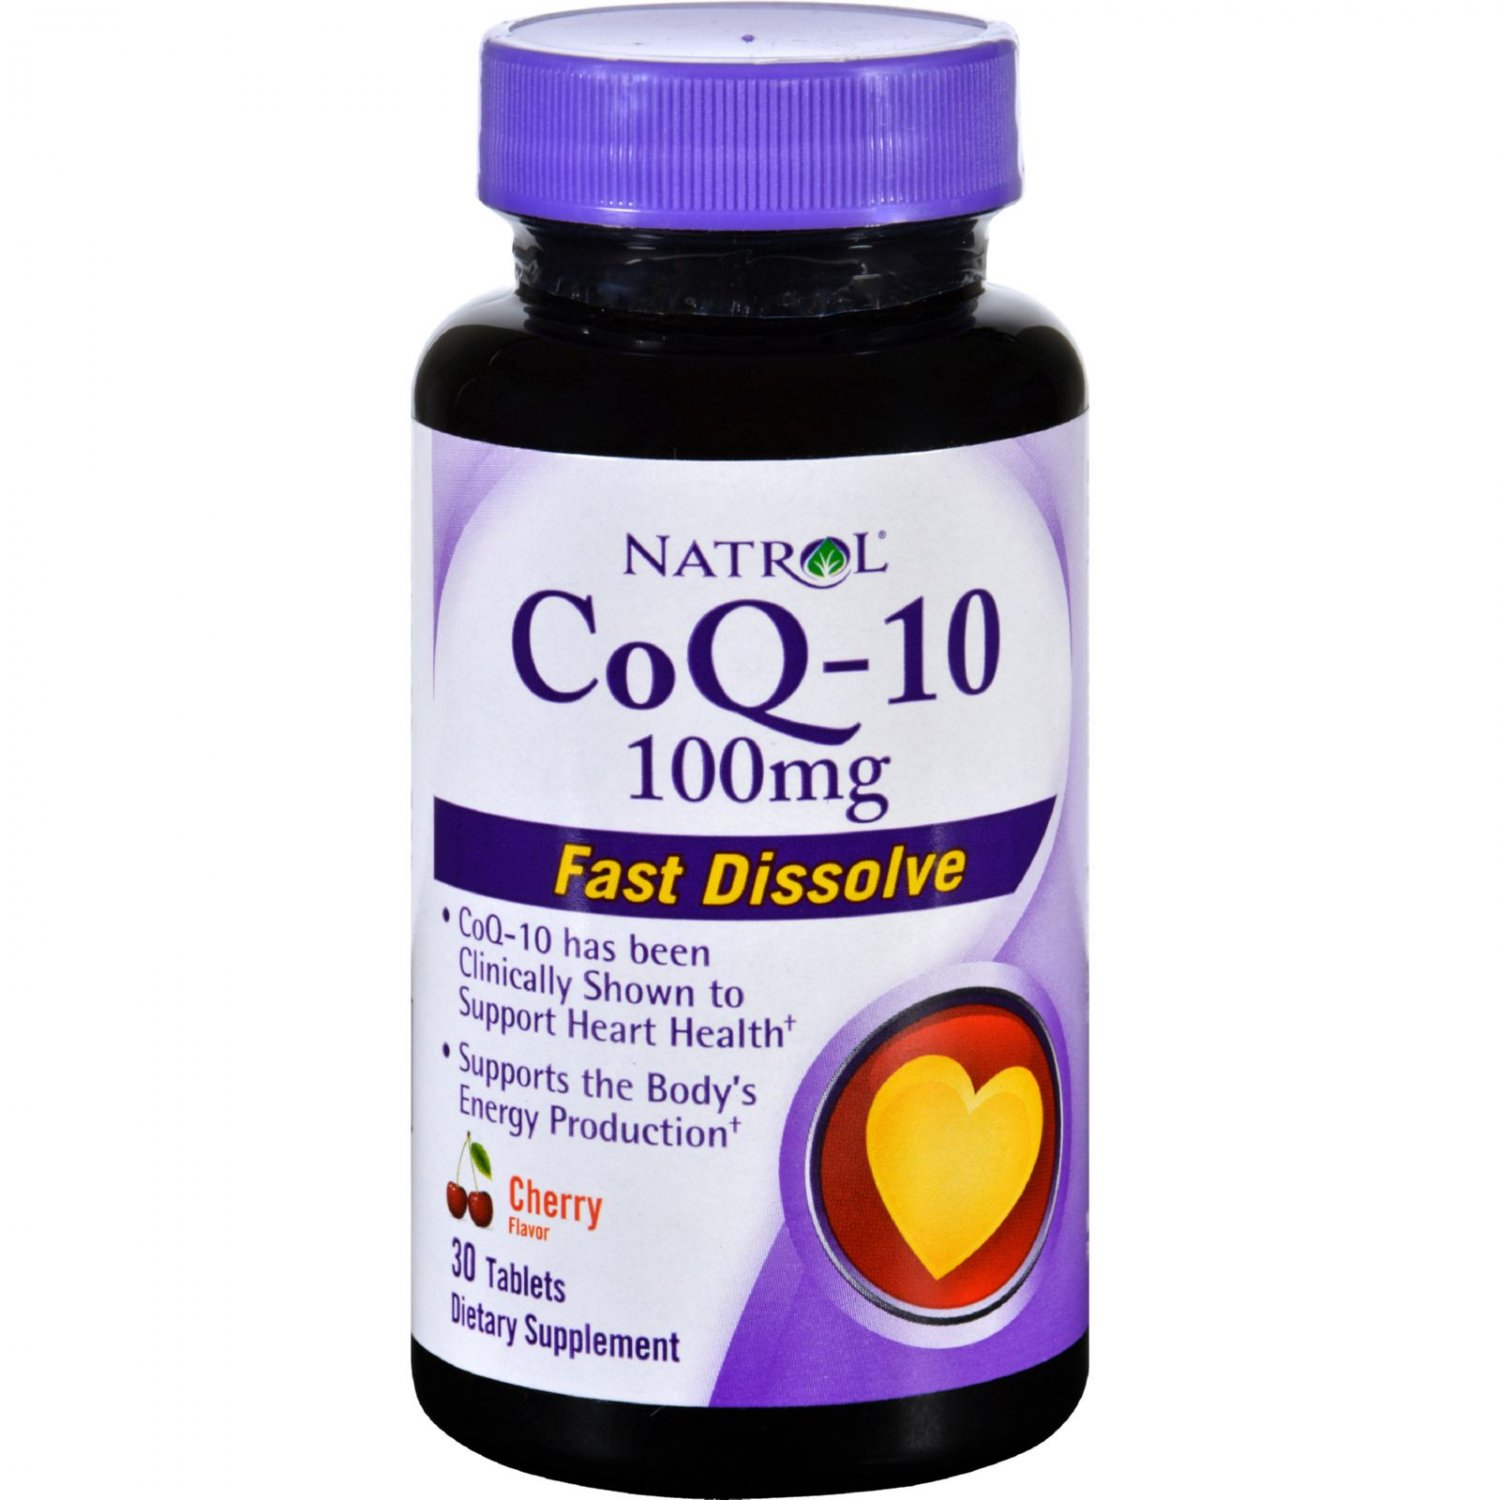 Natrol CoQ-10 - Cherry Flavor - 30 Tablets